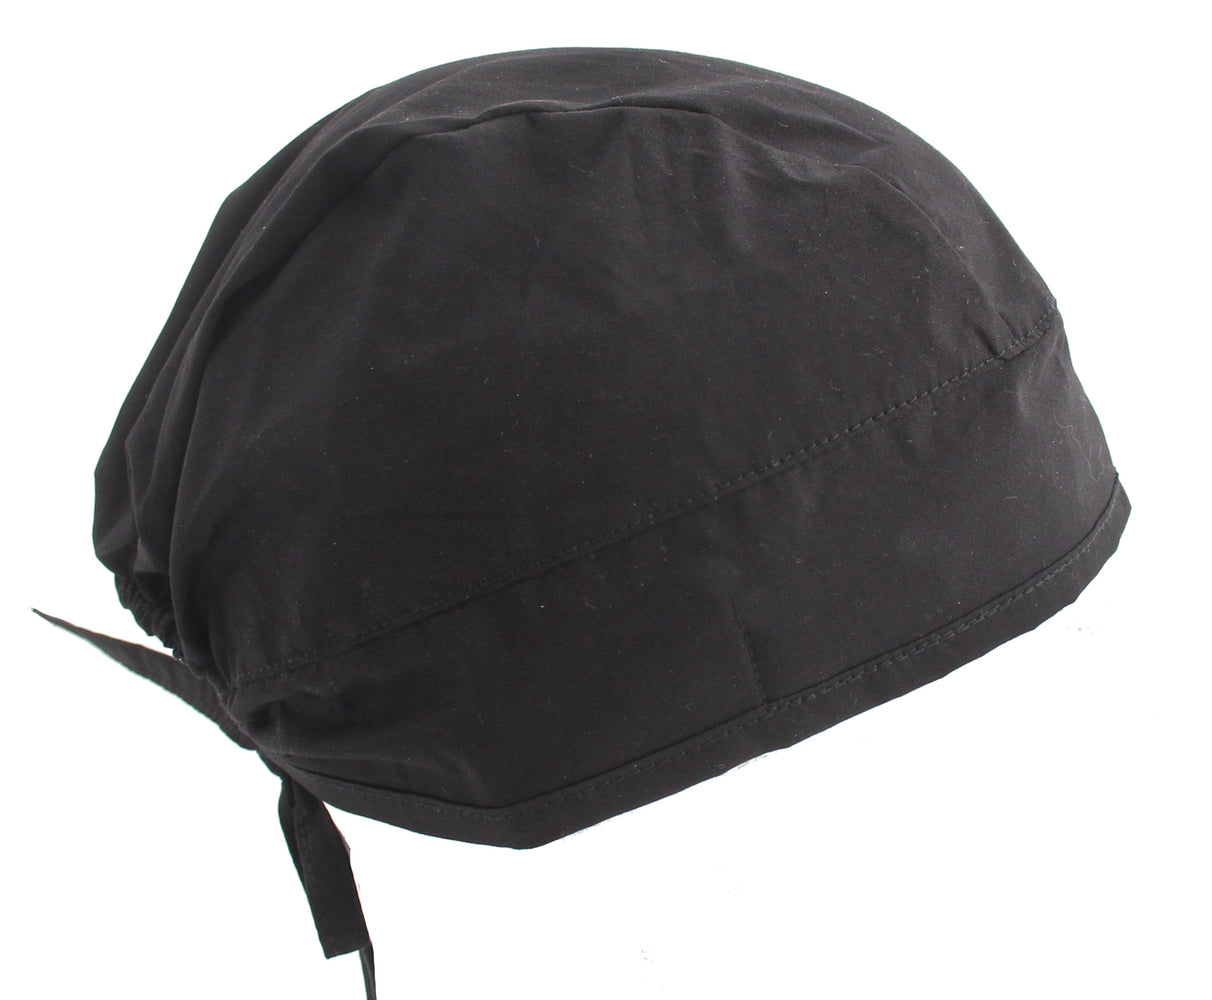 Solid Black Surgical Scrub Cap Hat